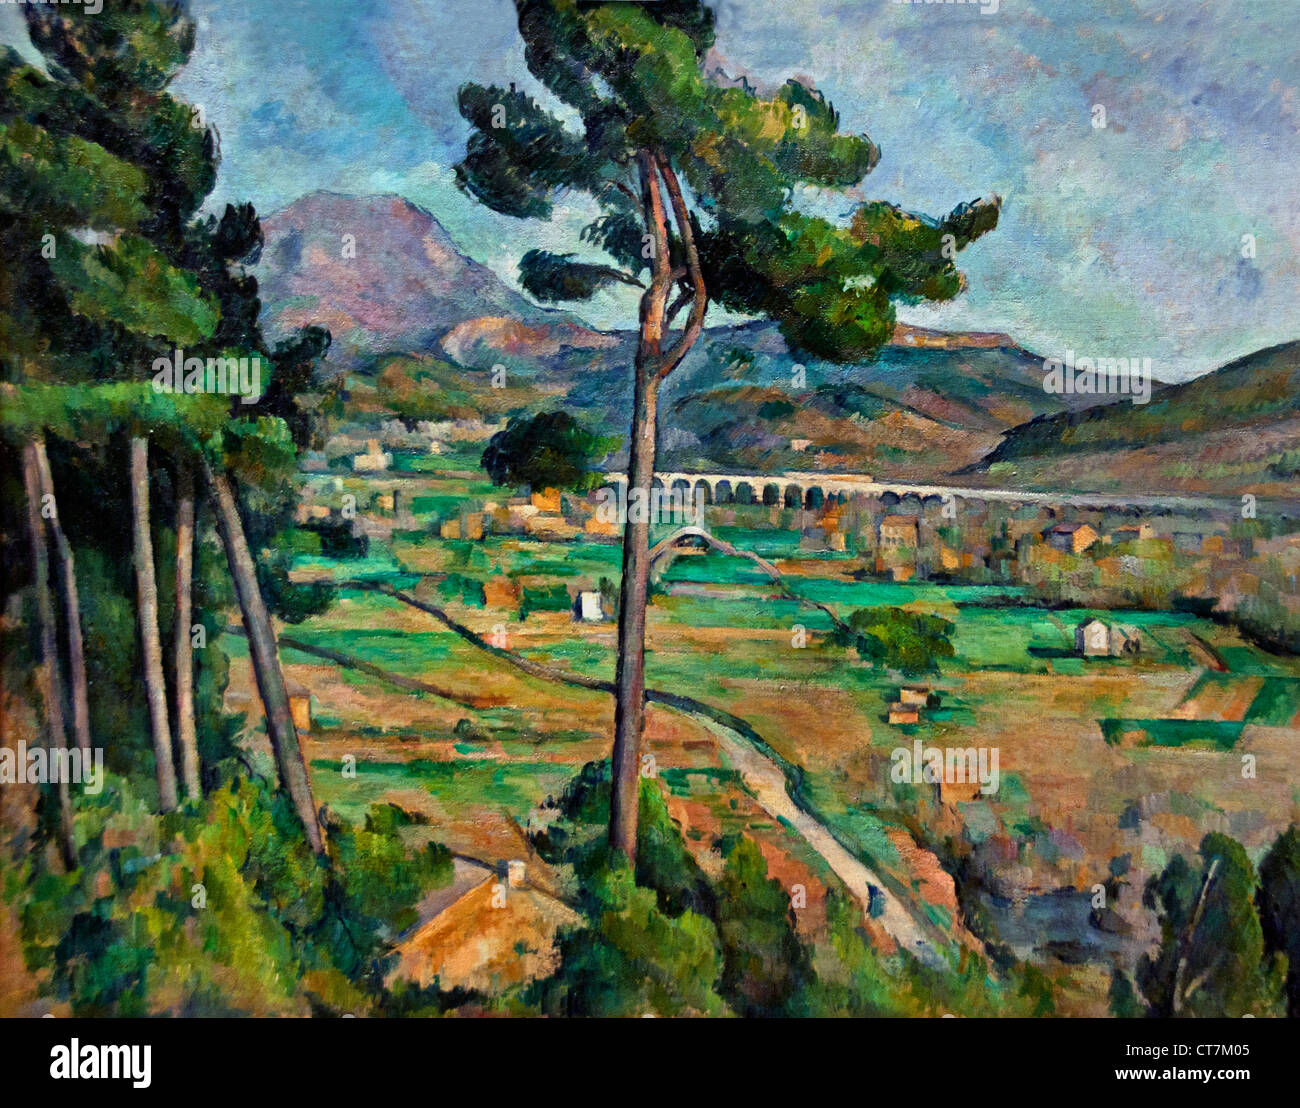 Mont Sainte Victoire and the Viaduct of the Arc River Valley 1882 Paul Cézanne 1839 – 1906 France French Stock Photo